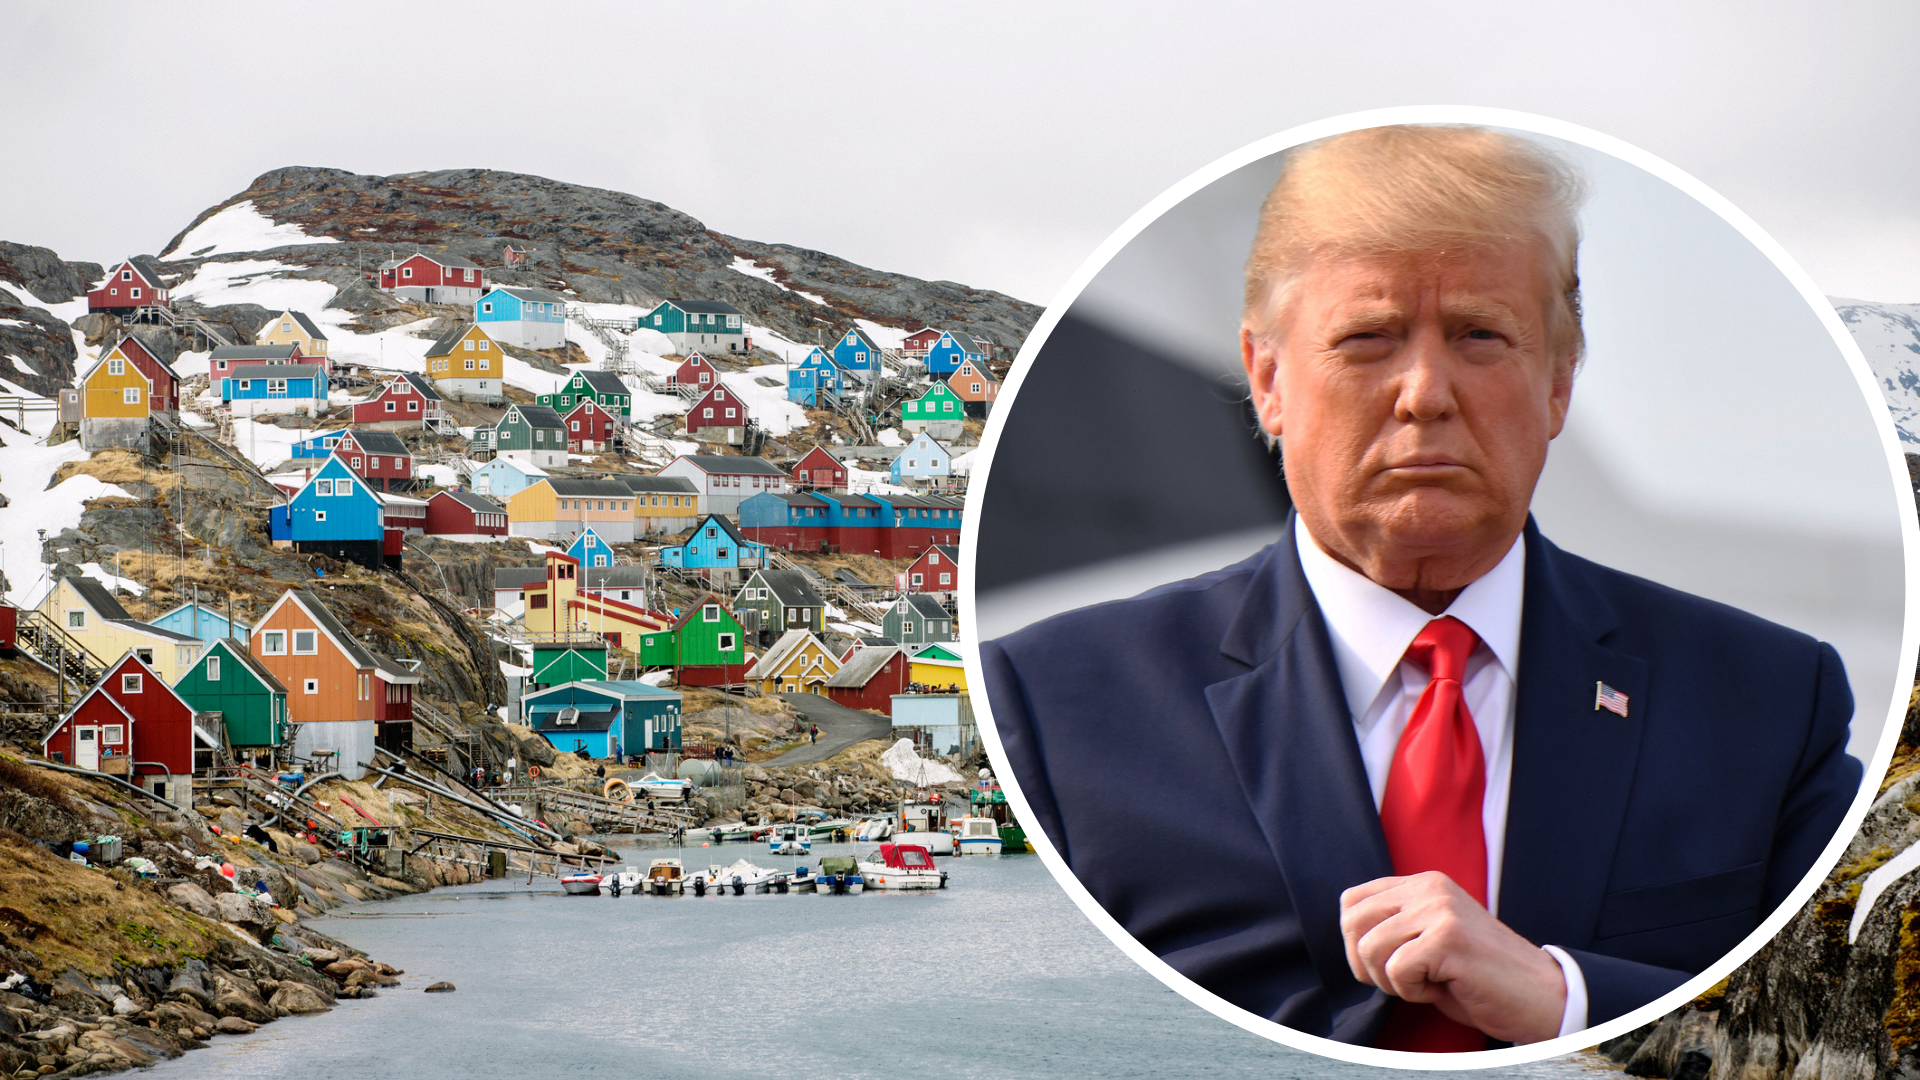 We are not for sale: Greenland's message to Donald Trump